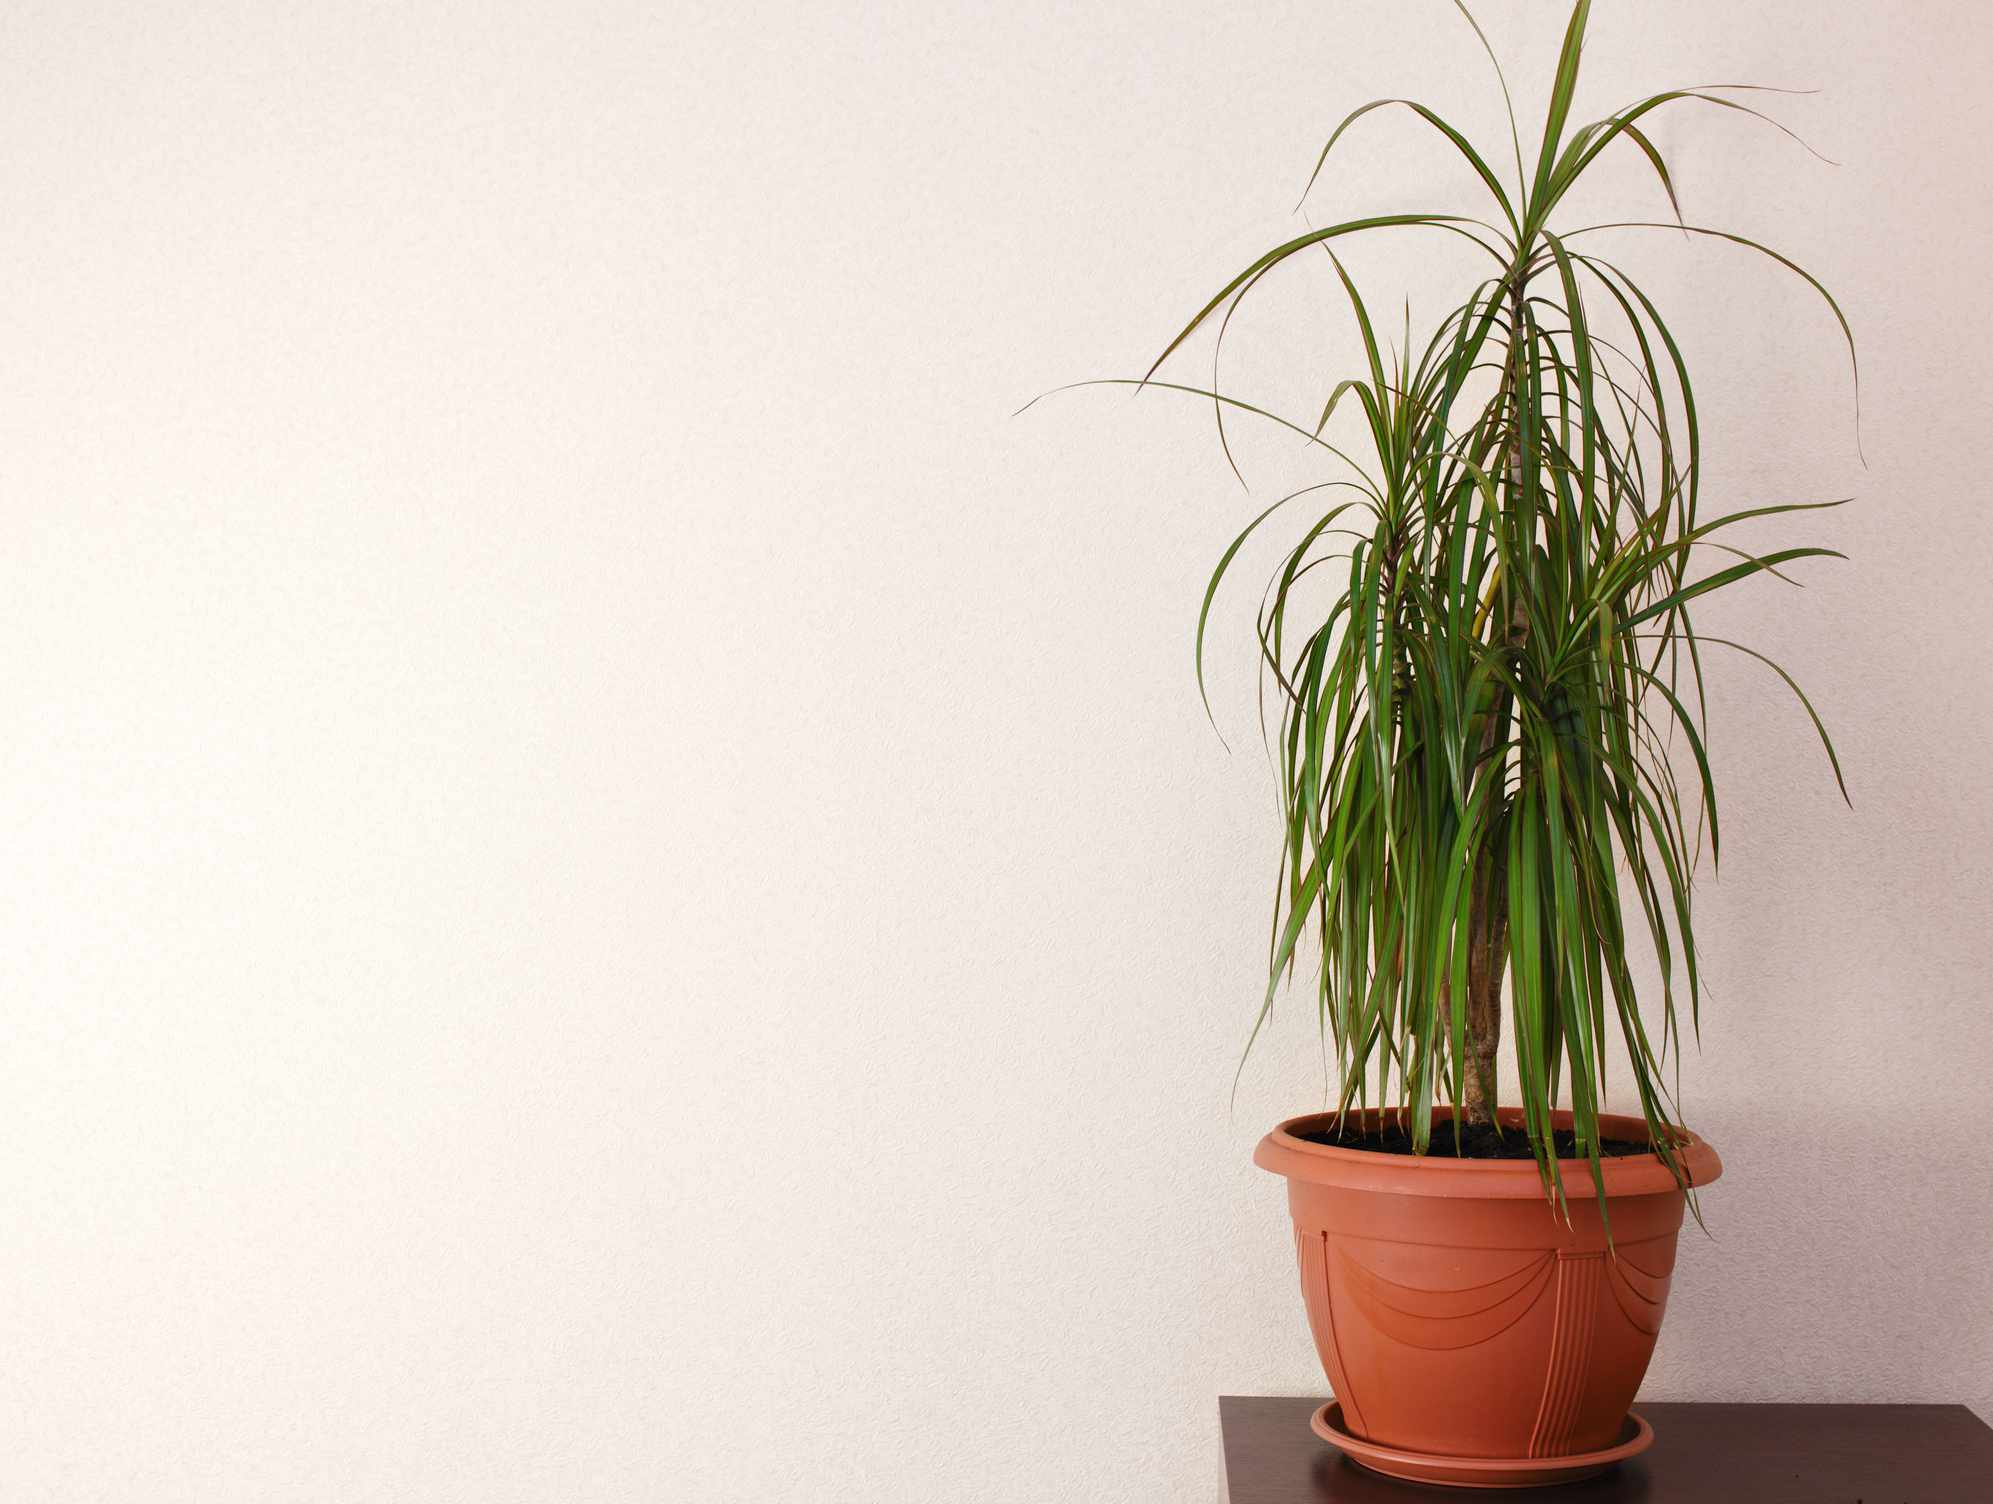 Potted ponytail palm (Beaucarnea recurvata) growing indoors